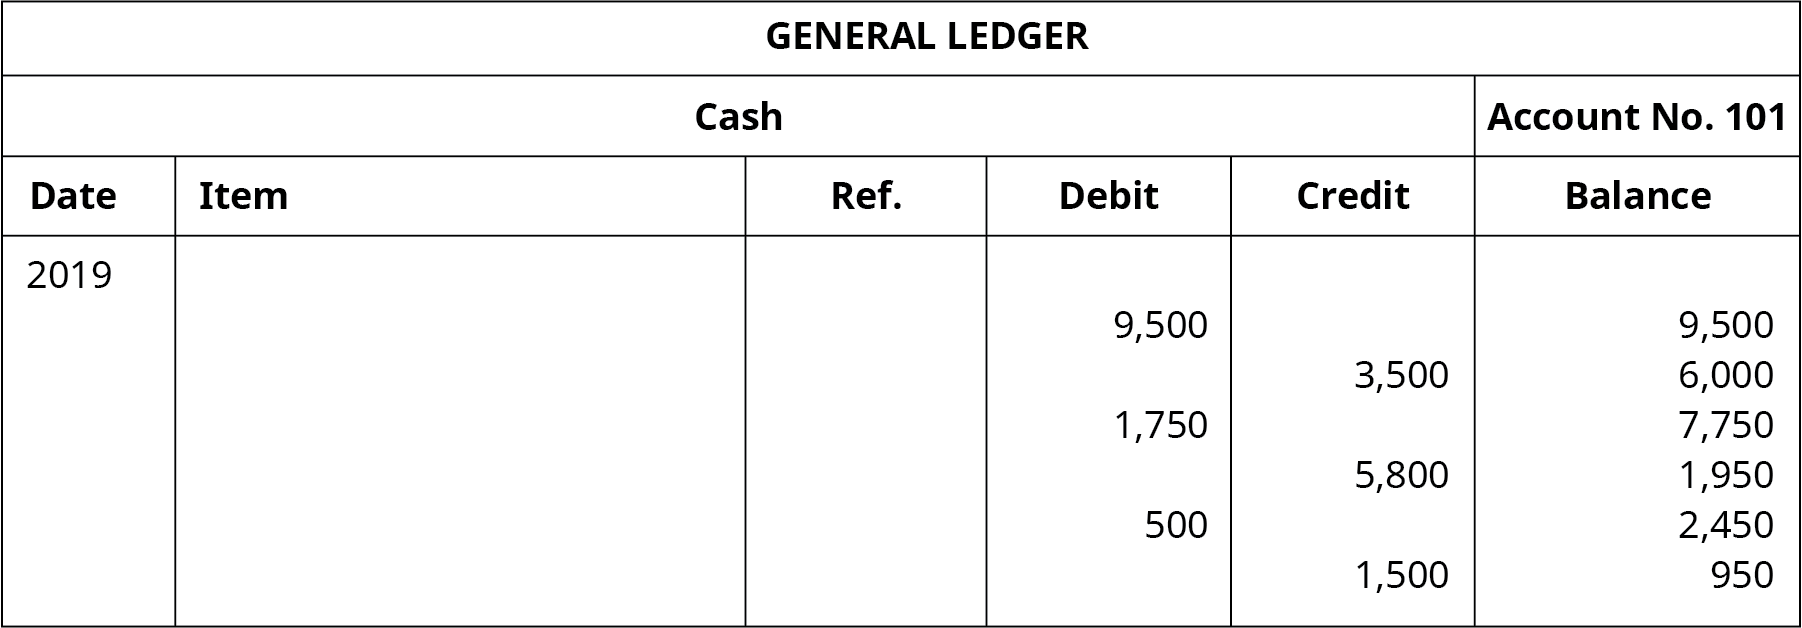 """A General Ledger titled """"Cash Account No. 101"""" with six columns. Date: 2019. Six columns labeled left to right: Date, Item, Reference, Debit, Credit, Balance. Debit: 9,500; Balance: 9,500. Credit: 3,500; Balance: 6,000. Debit: 1,750; Balance: 7,750. Credit: 5,800; Balance: 1,950. Debit: 500; Balance: 2,450. Credit: 1,500; Balance: 950. Credit: 1,200; Balance: 250."""